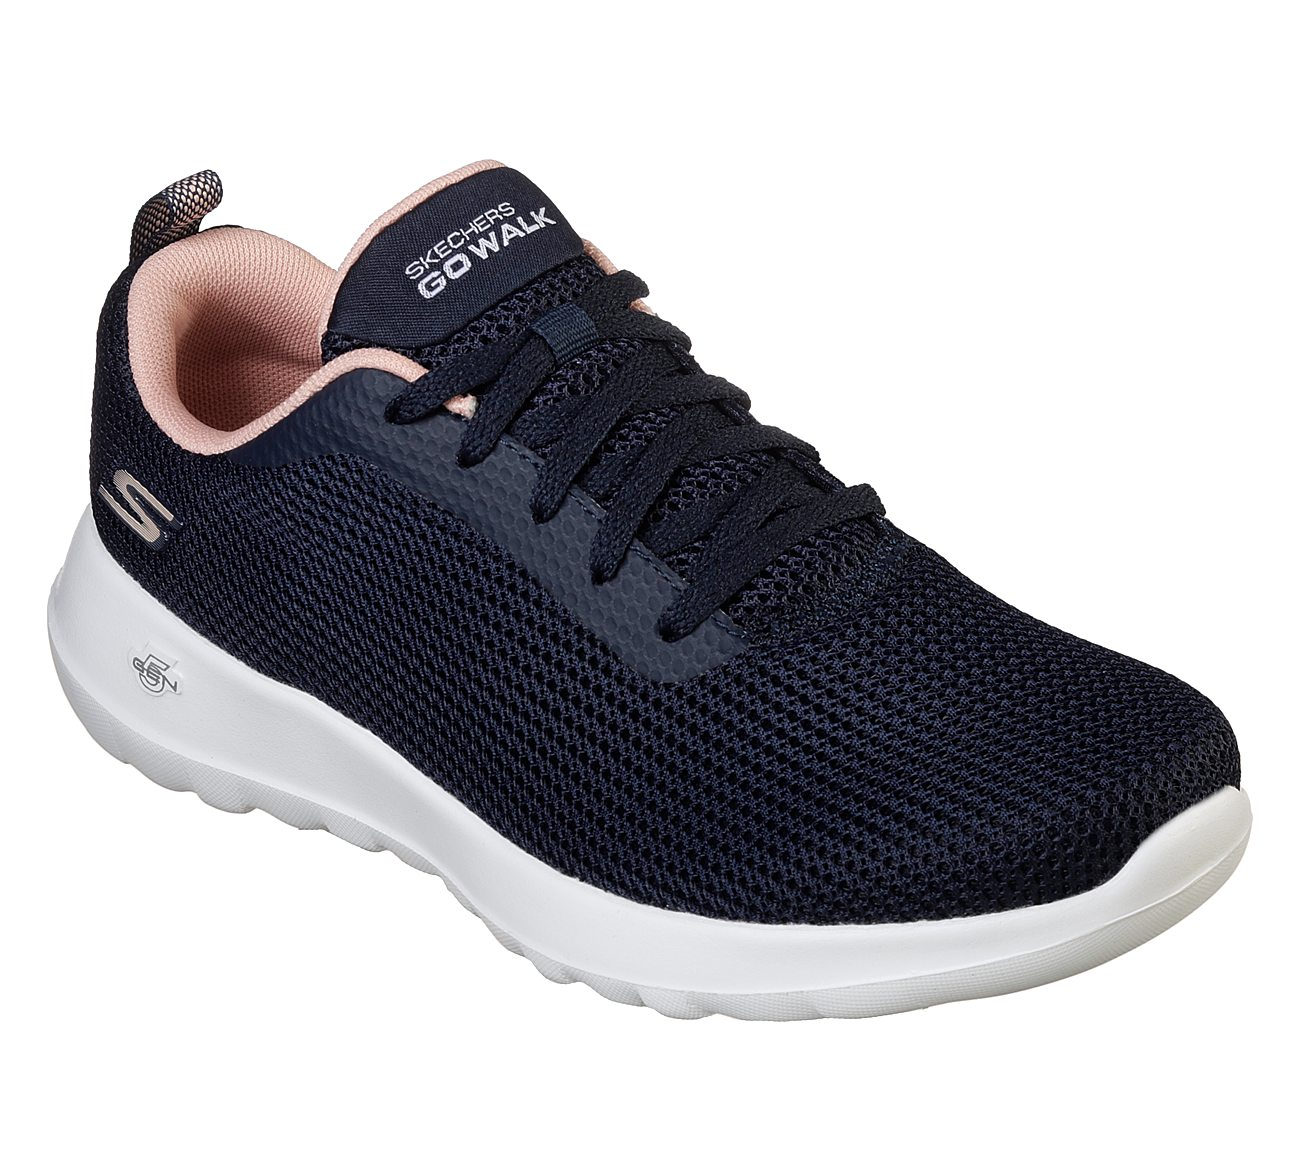 Skechers GOwalk Joy - Upturn